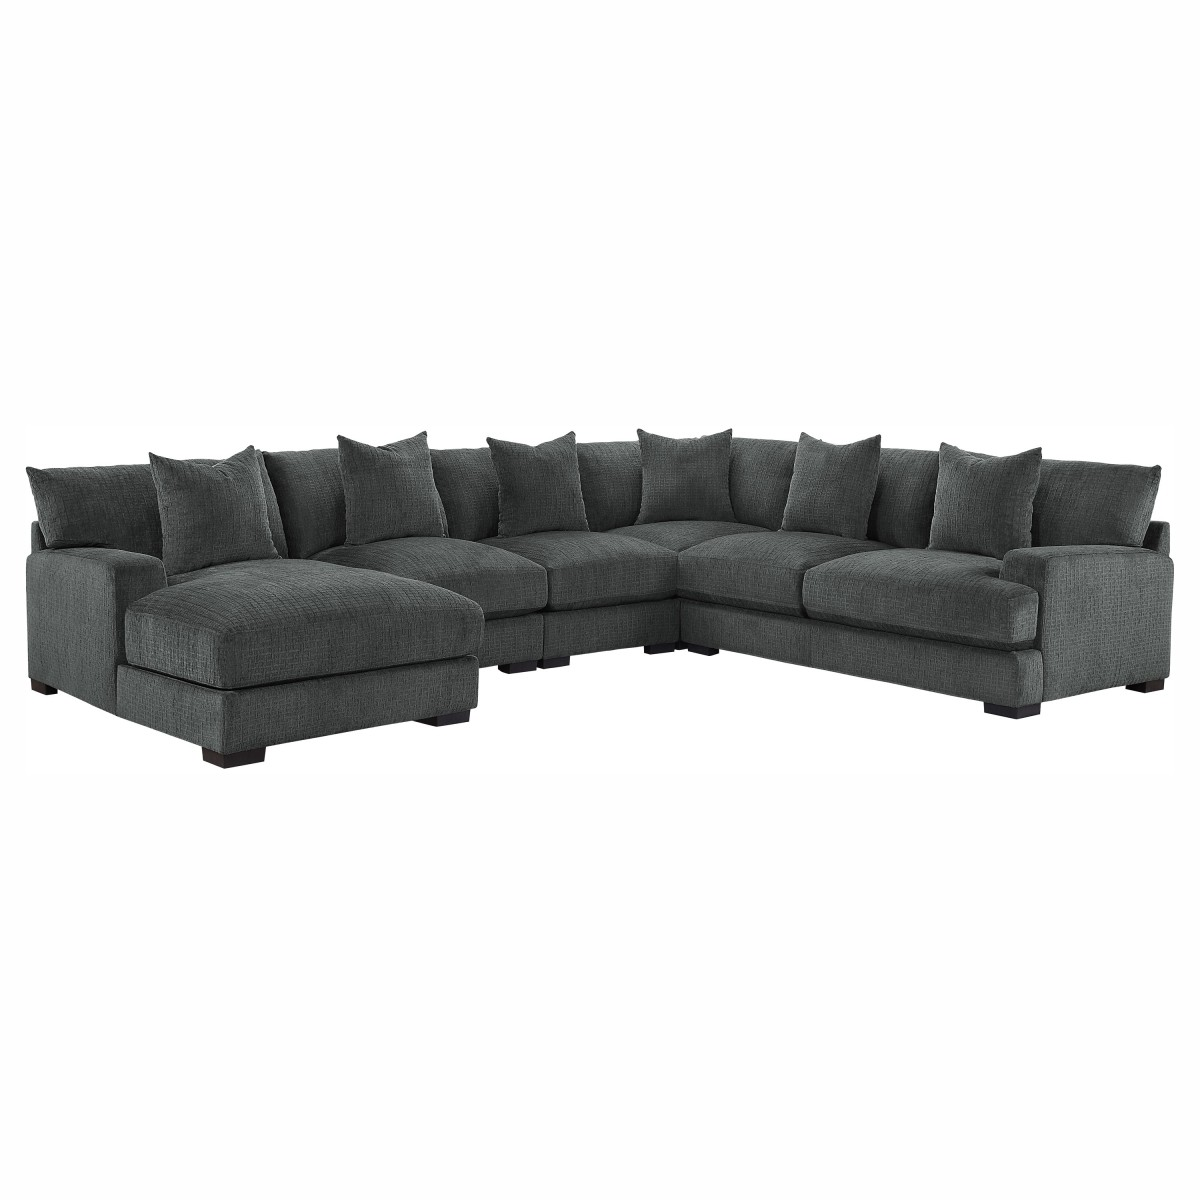 HE-9857DG-5LC2R 5 pc Worchester dark gray chenille fabric modular sectional sofa left chaise